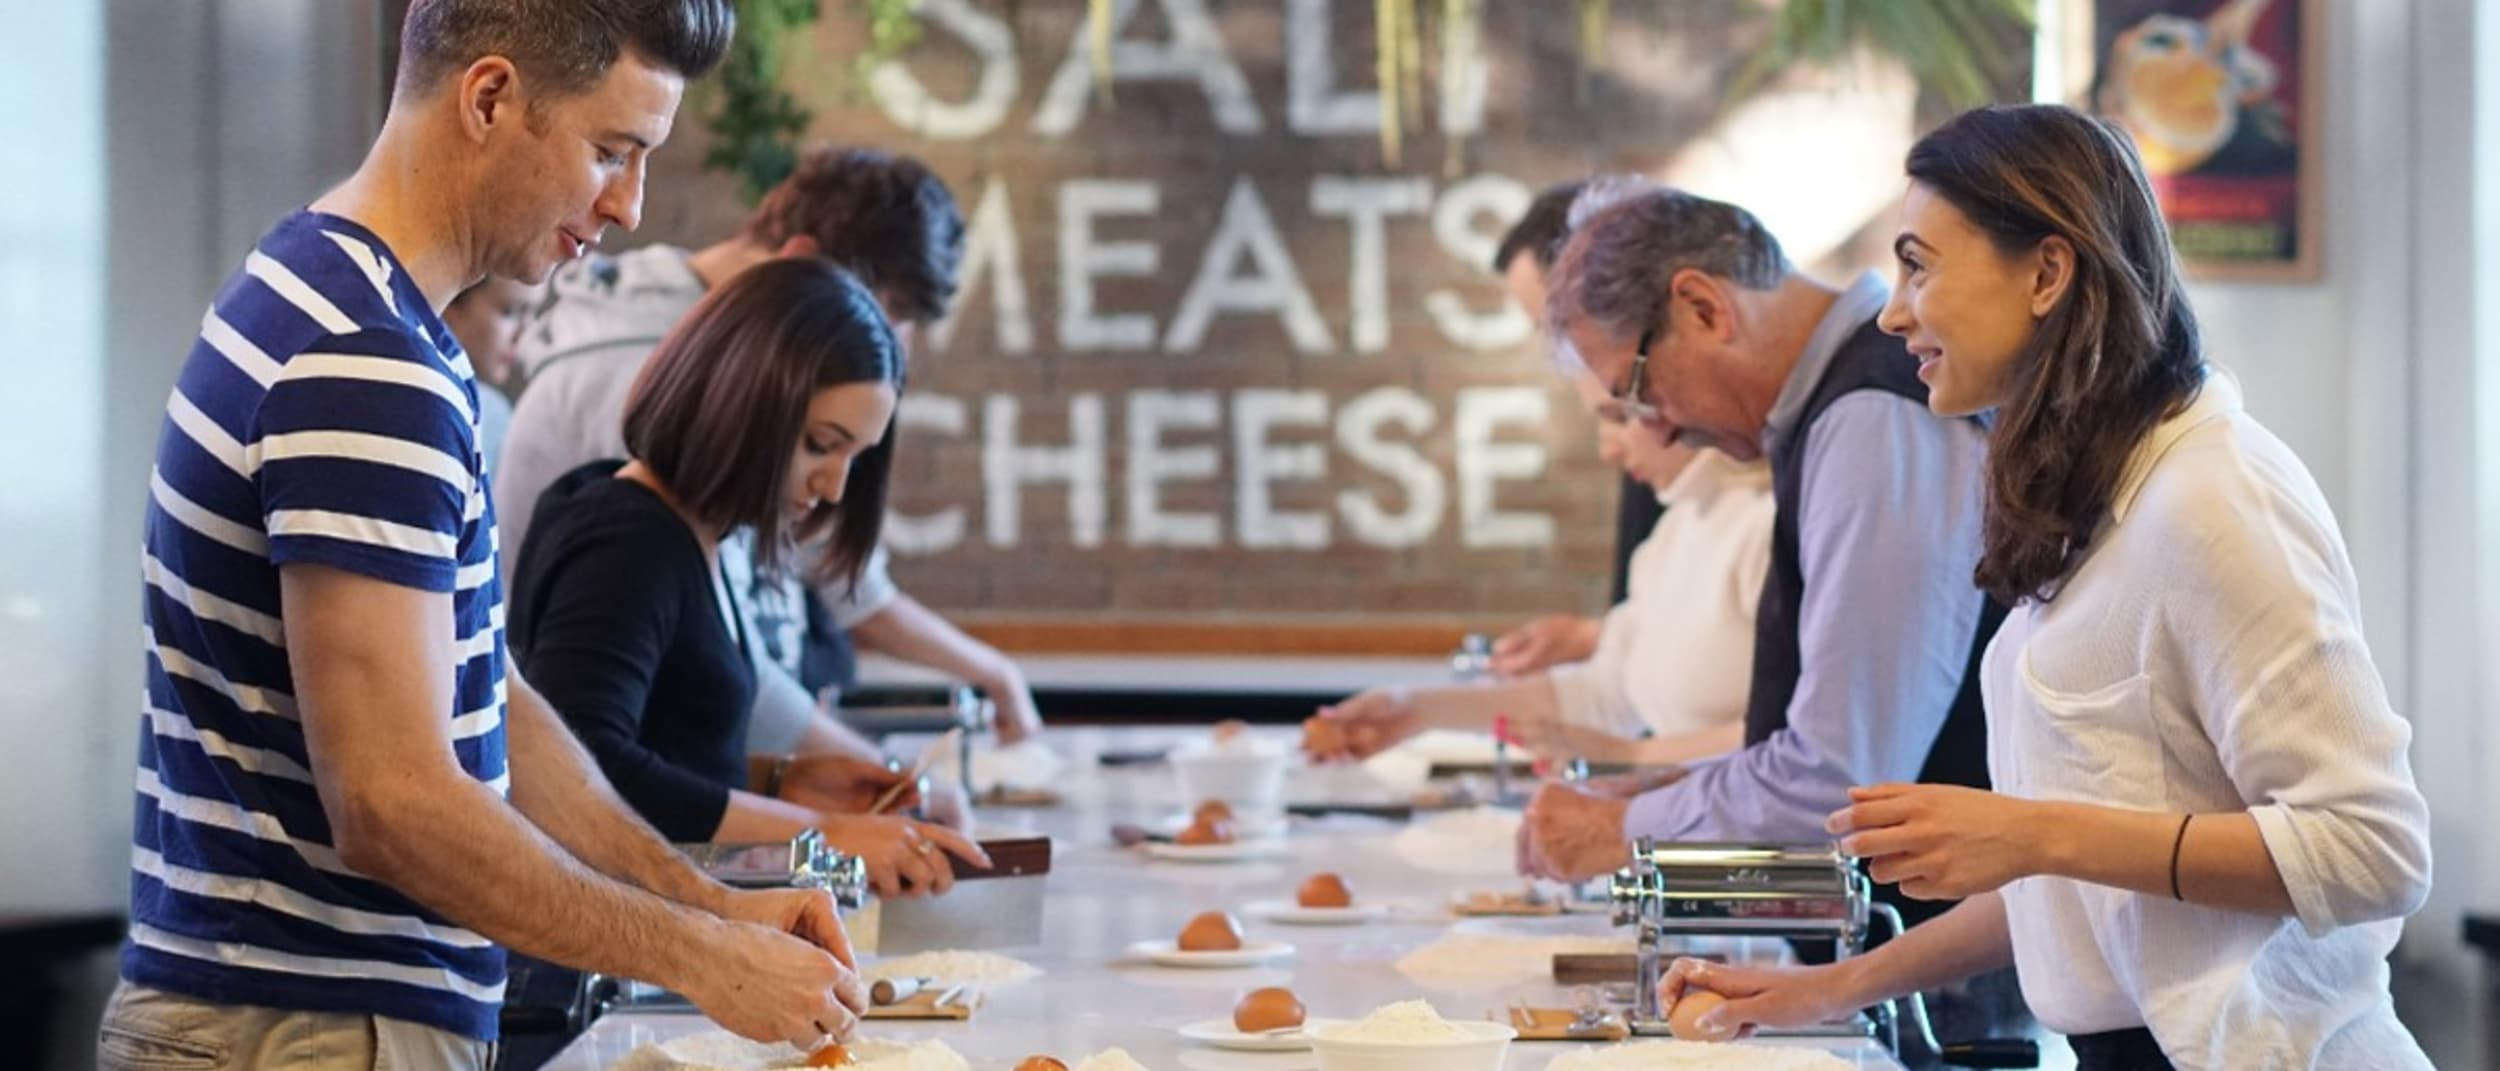 Cook up a storm with Salt Meats Cheese